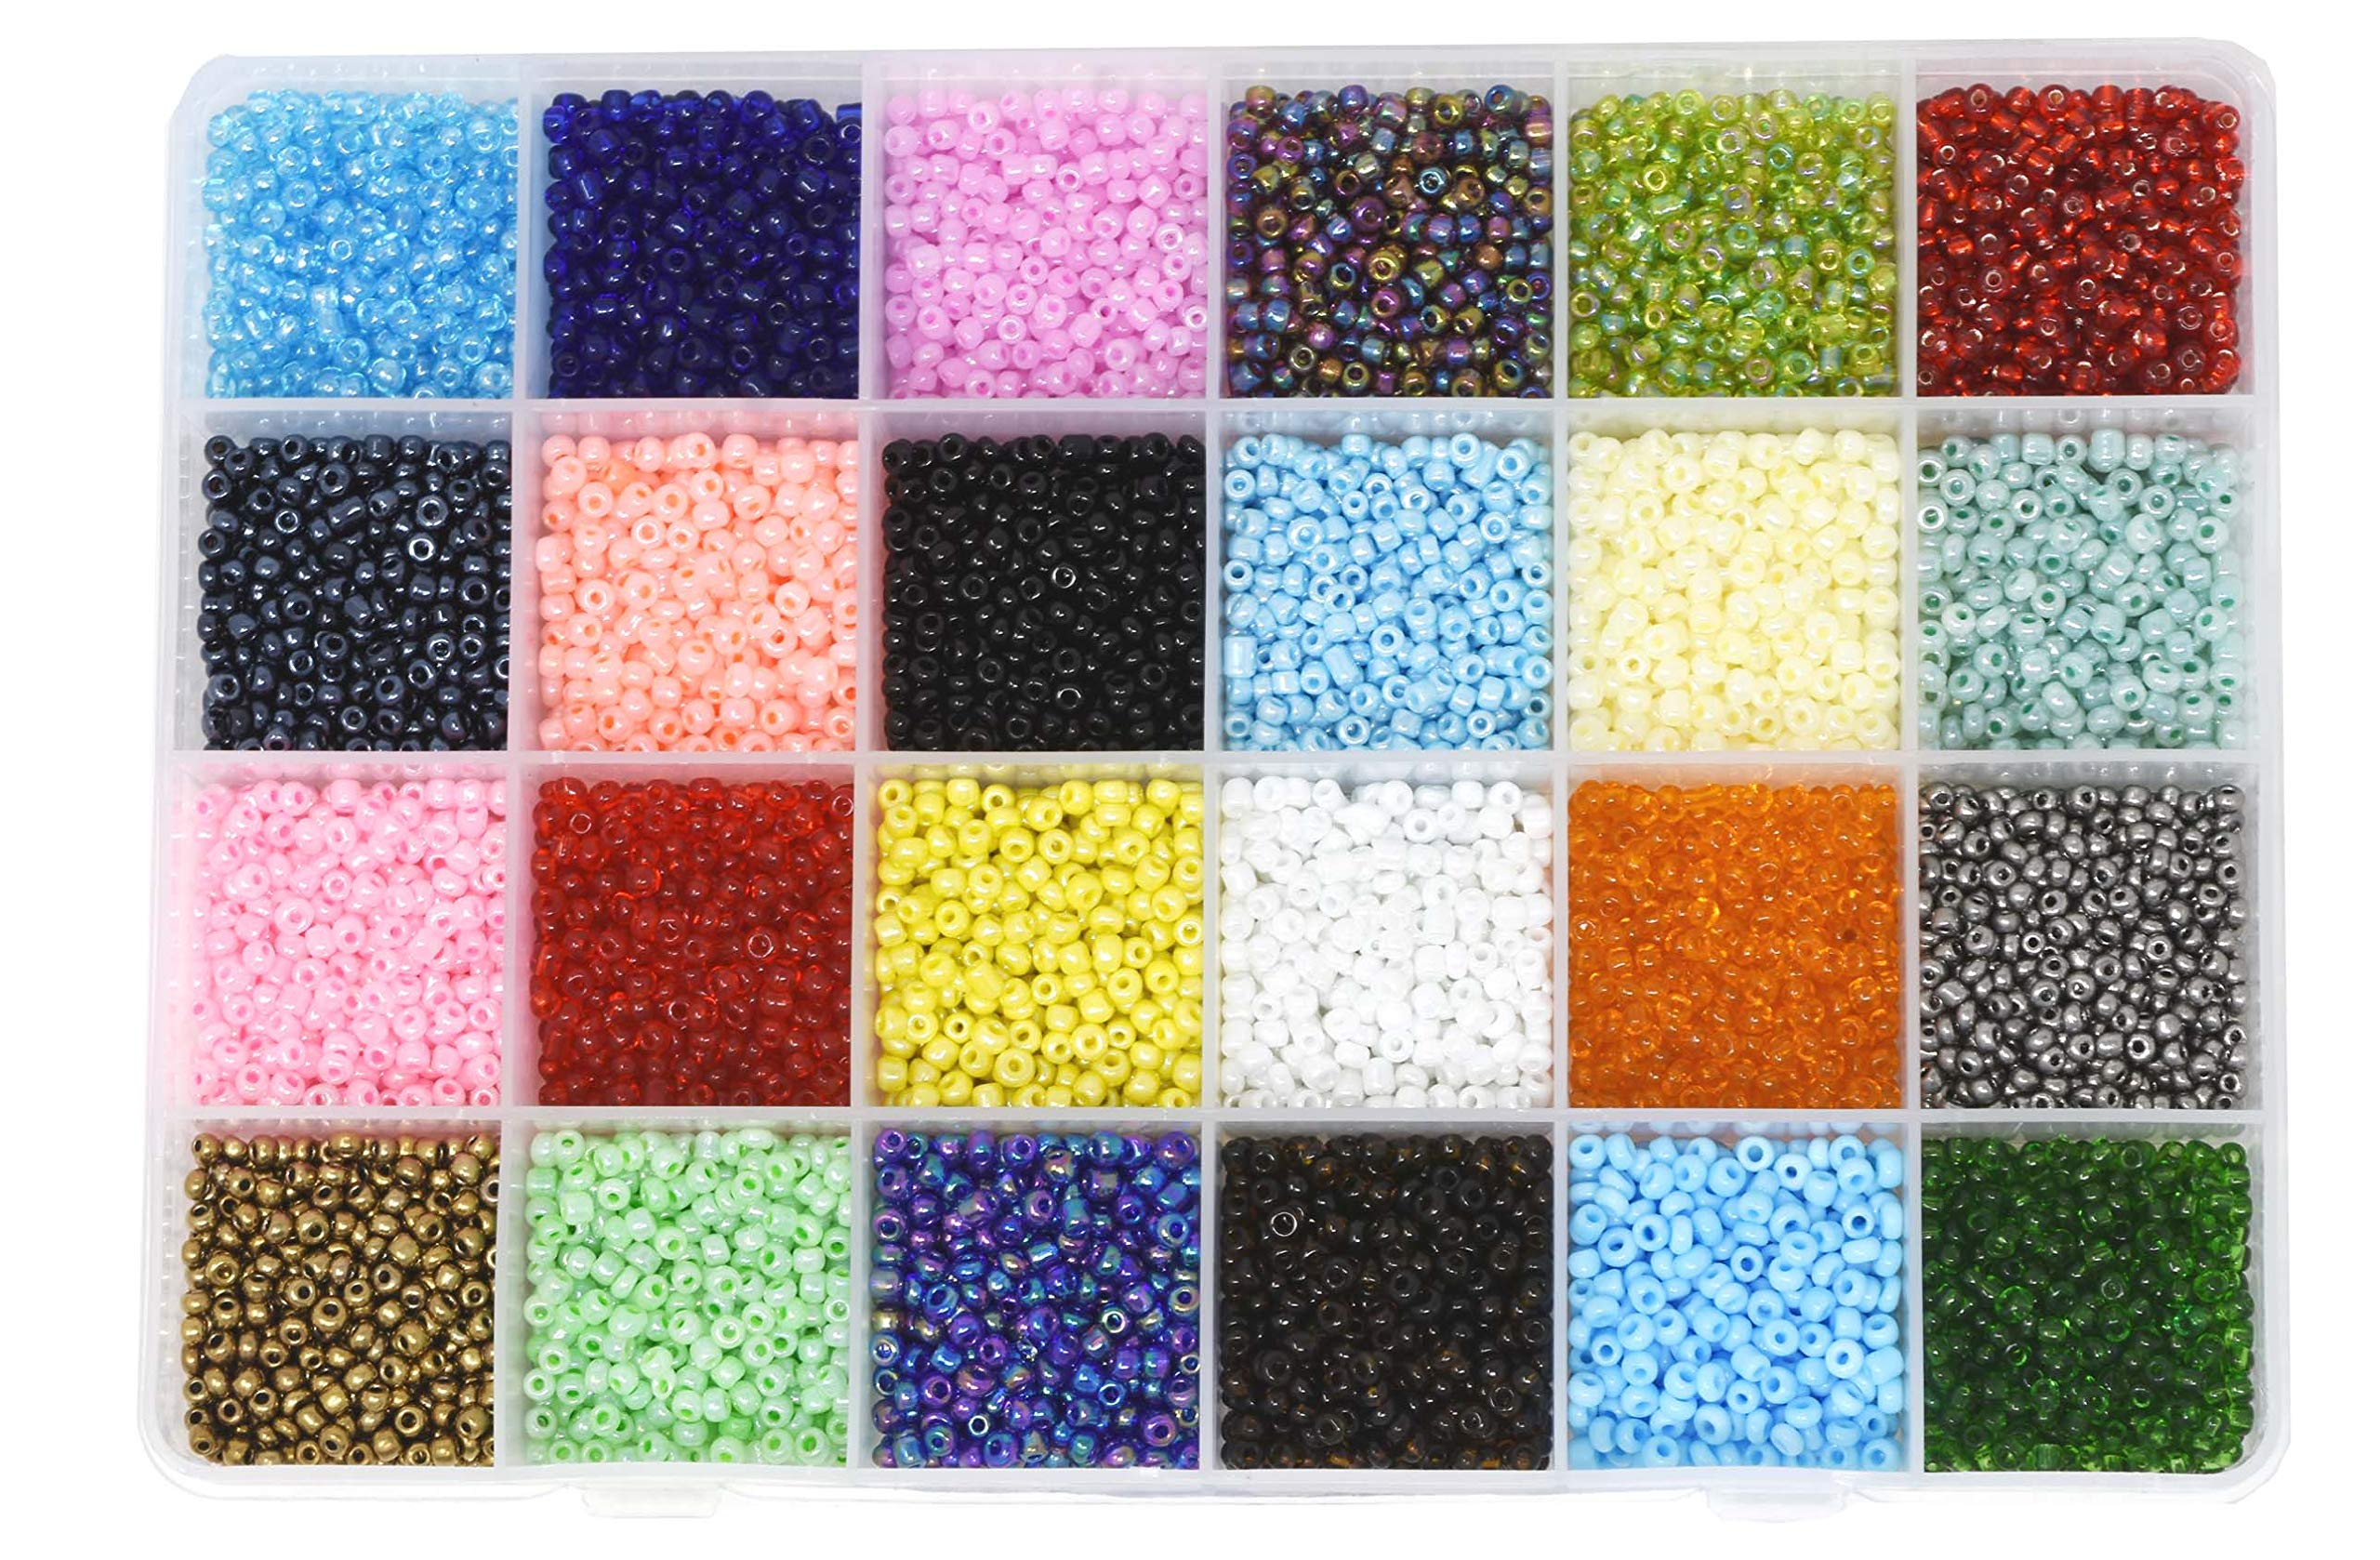 Mandala Crafts Glass Seed Beads, Small Pony Beads Assorted Kit with Organizer Box for Jewelry Making, Beading, Crafting (Round 3X2mm 8/0, 24 Assorted Multicolor Set) by Mandala Crafts